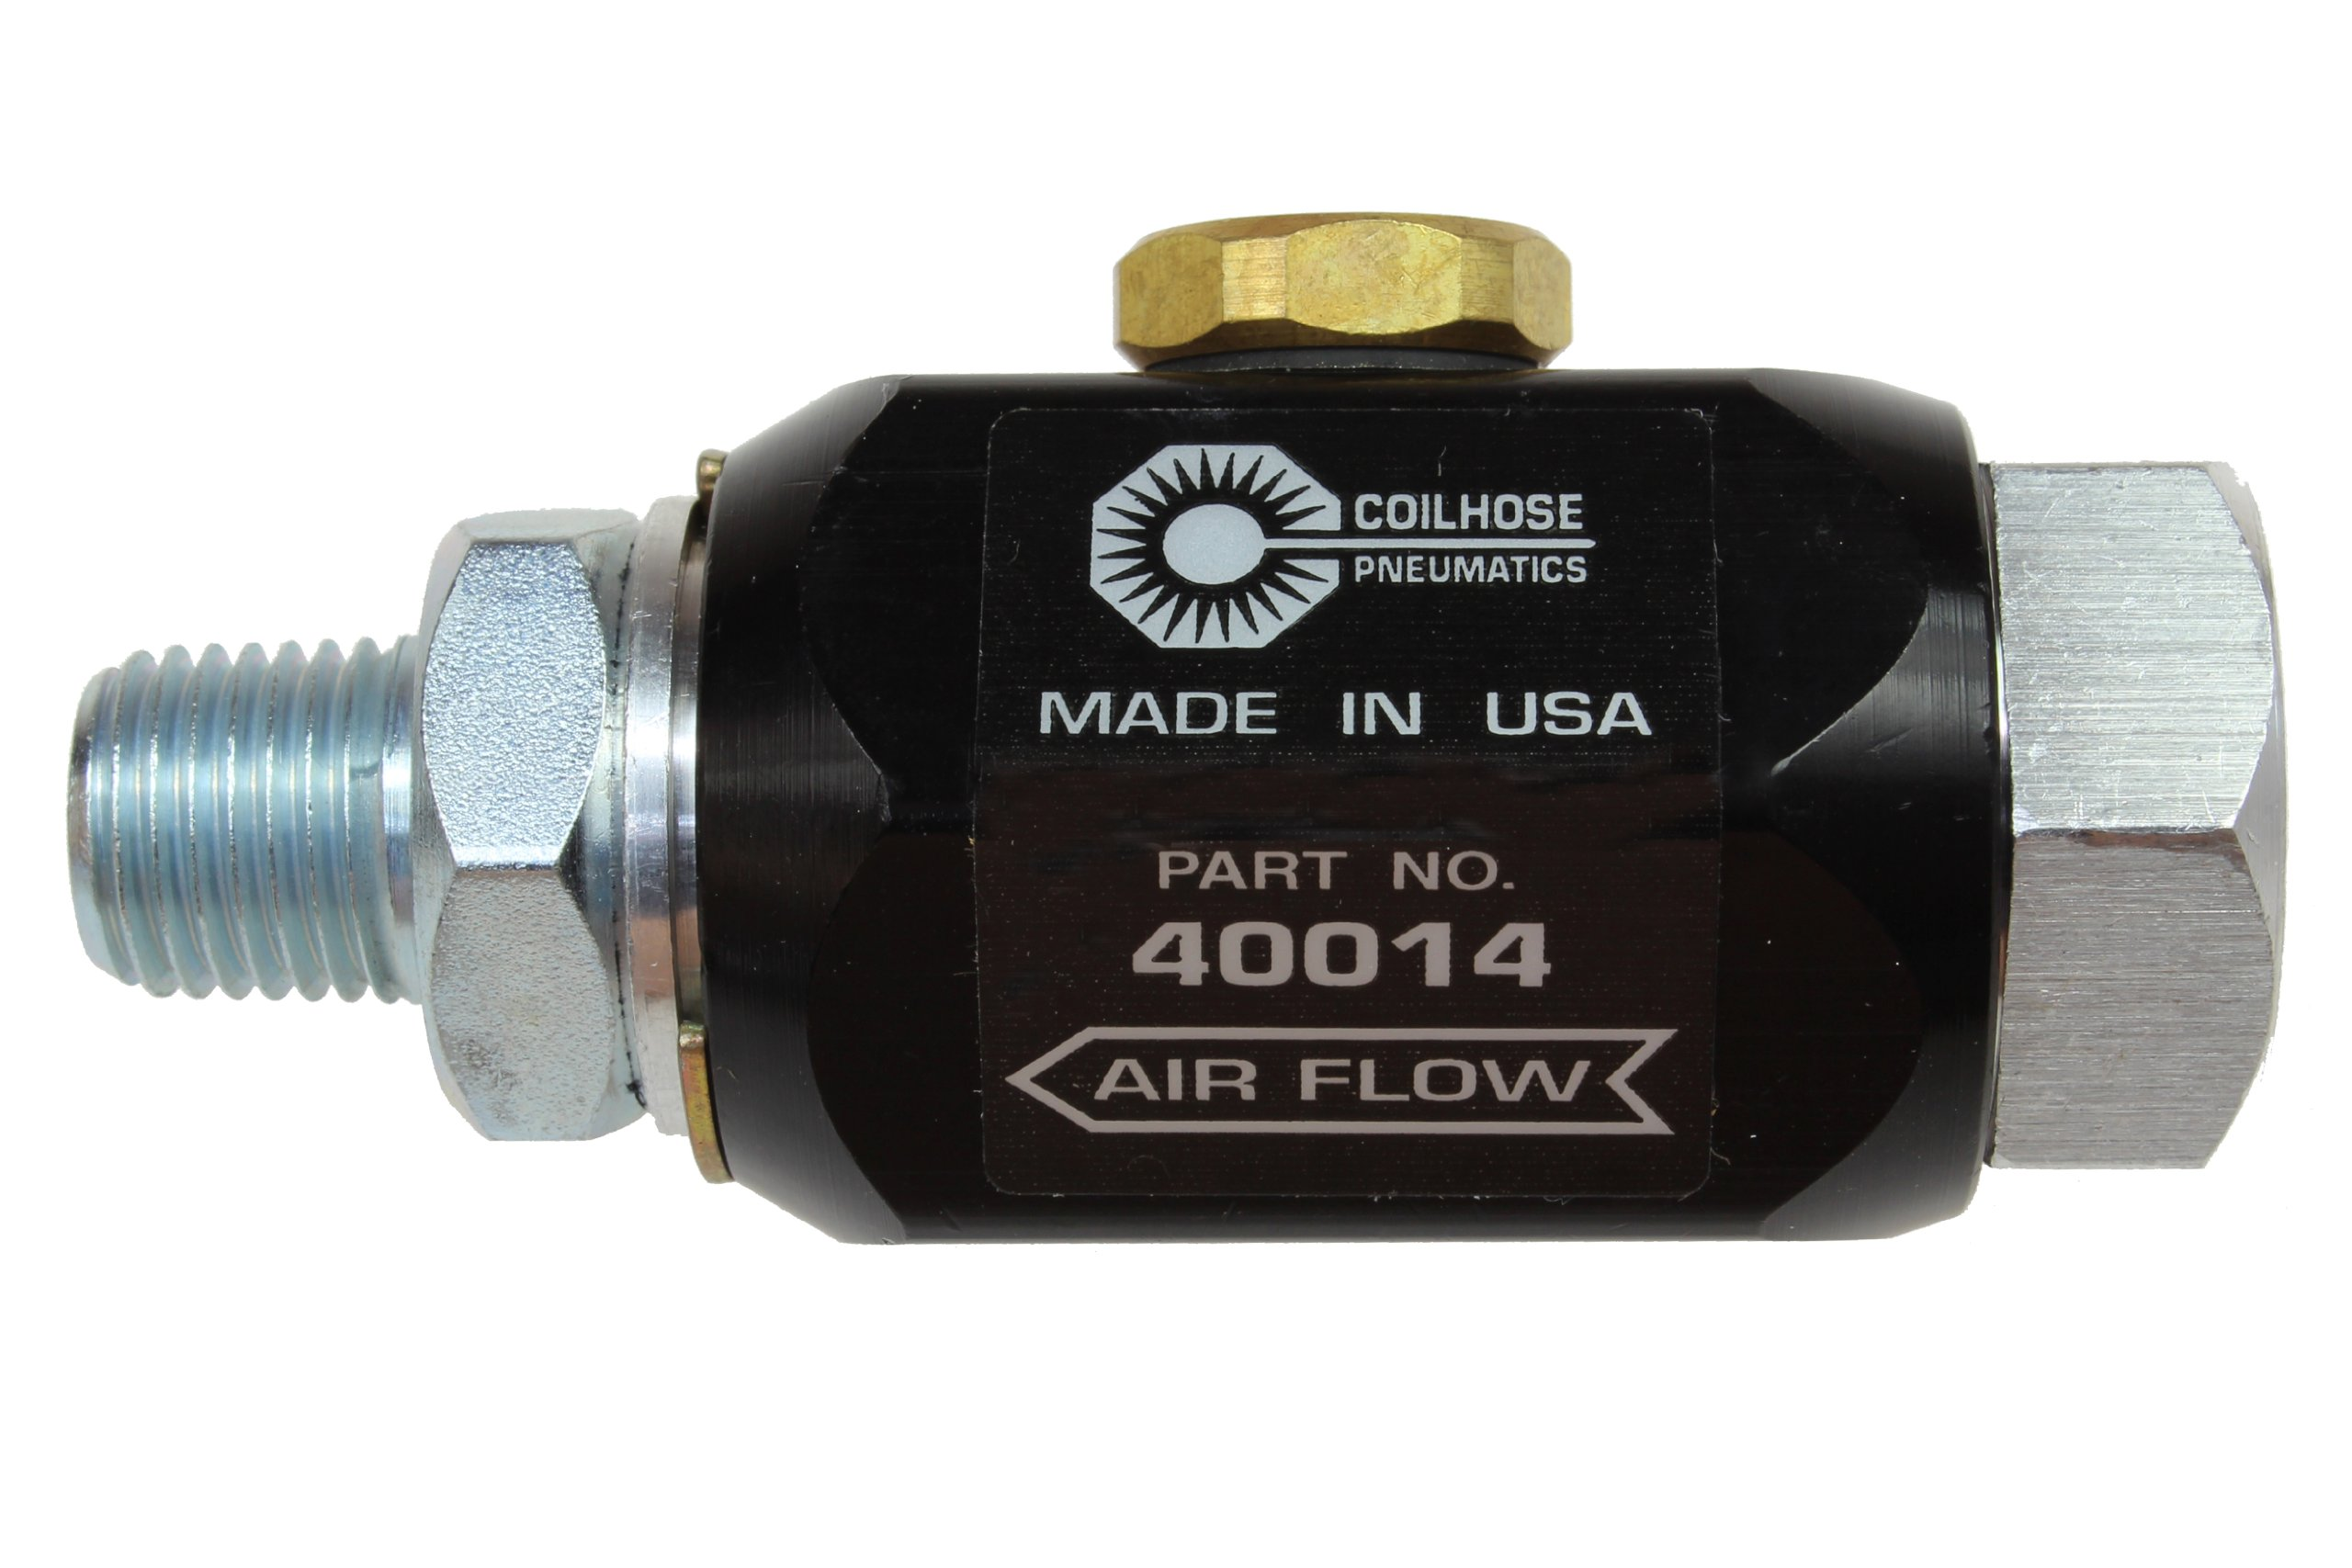 Coilhose Pneumatics 40014 In-Line Lubricator, 1/4-Inch Pipe Size, 5.0 Cubic Centimeter Lubricant Capacity by Coilhose Pneumatics